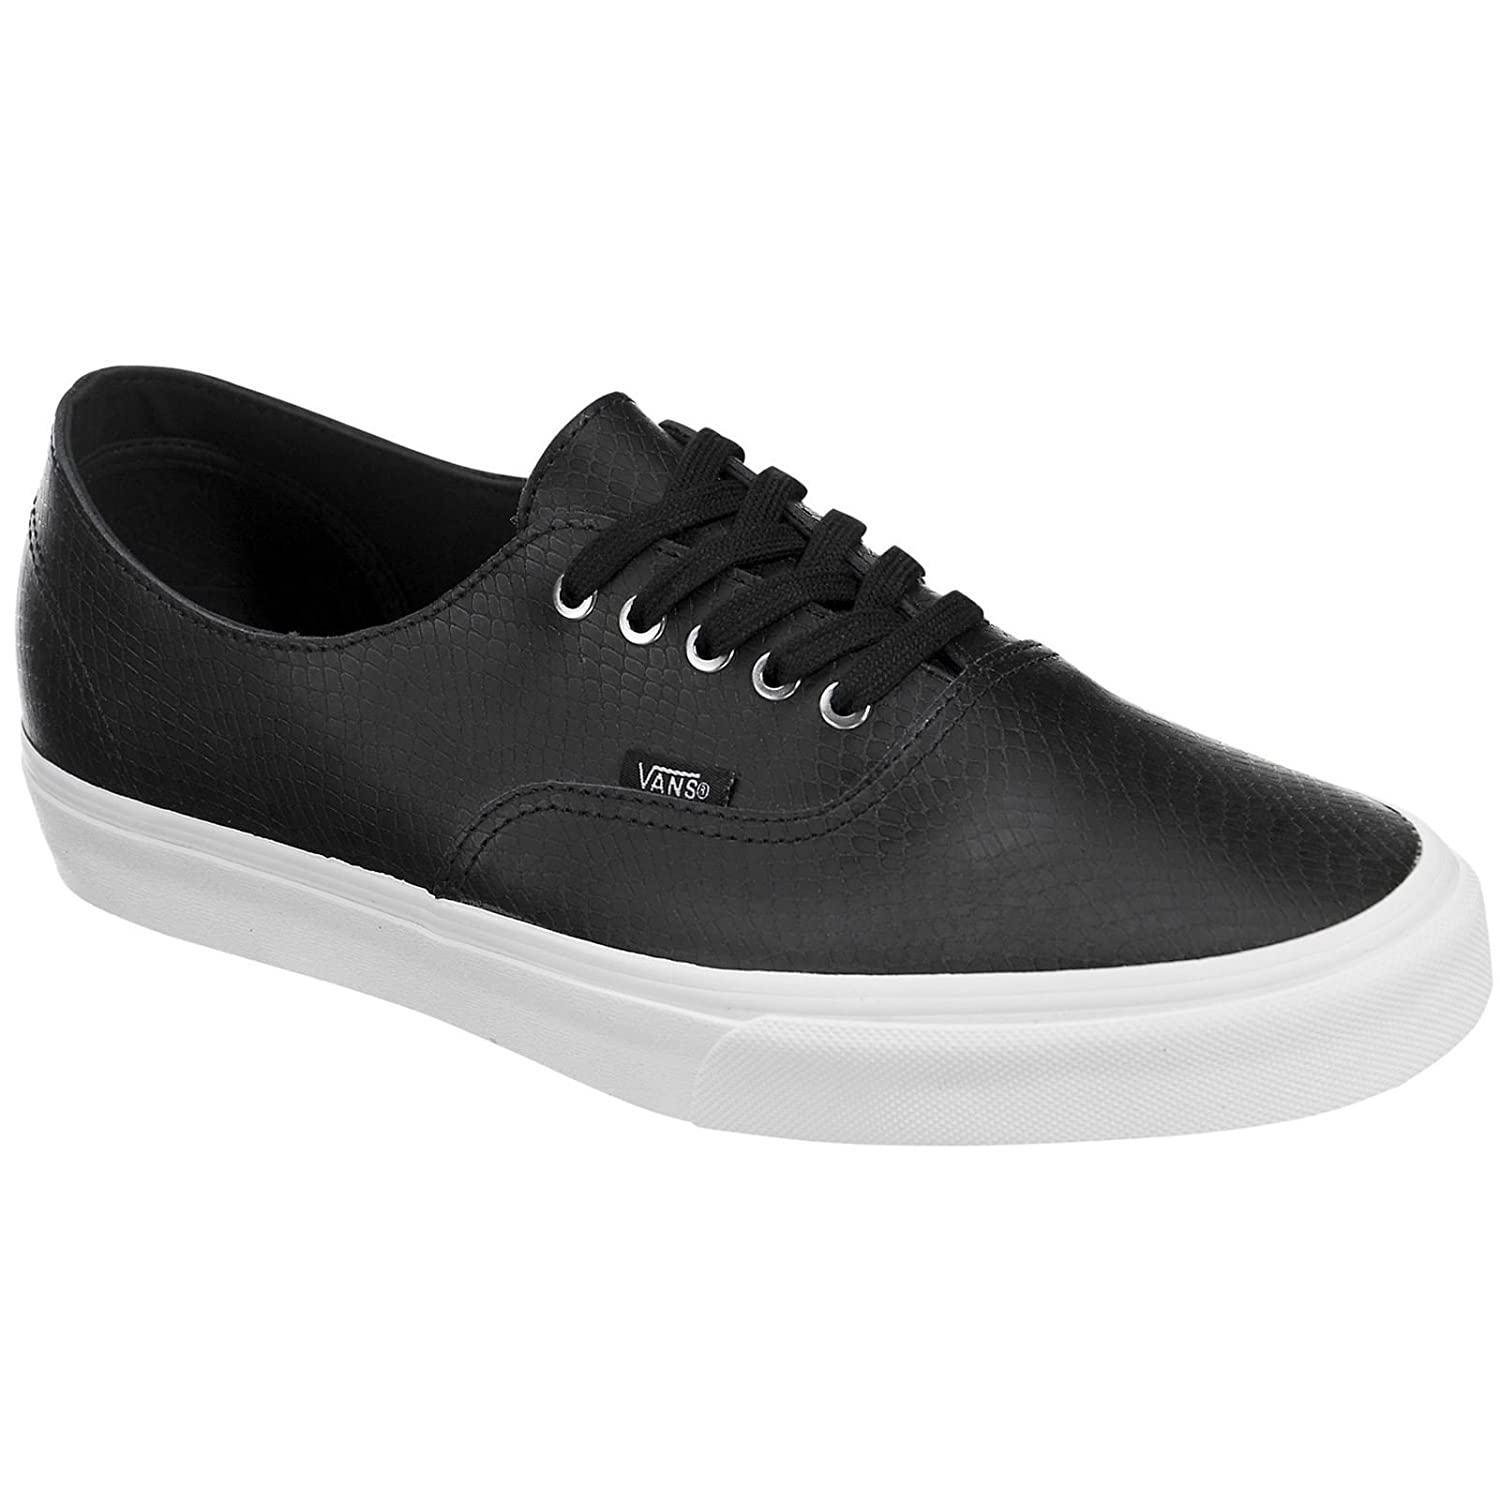 a212833307be50 Vans Womens Authentic Decon Leather Trainers  Amazon.co.uk  Shoes   Bags